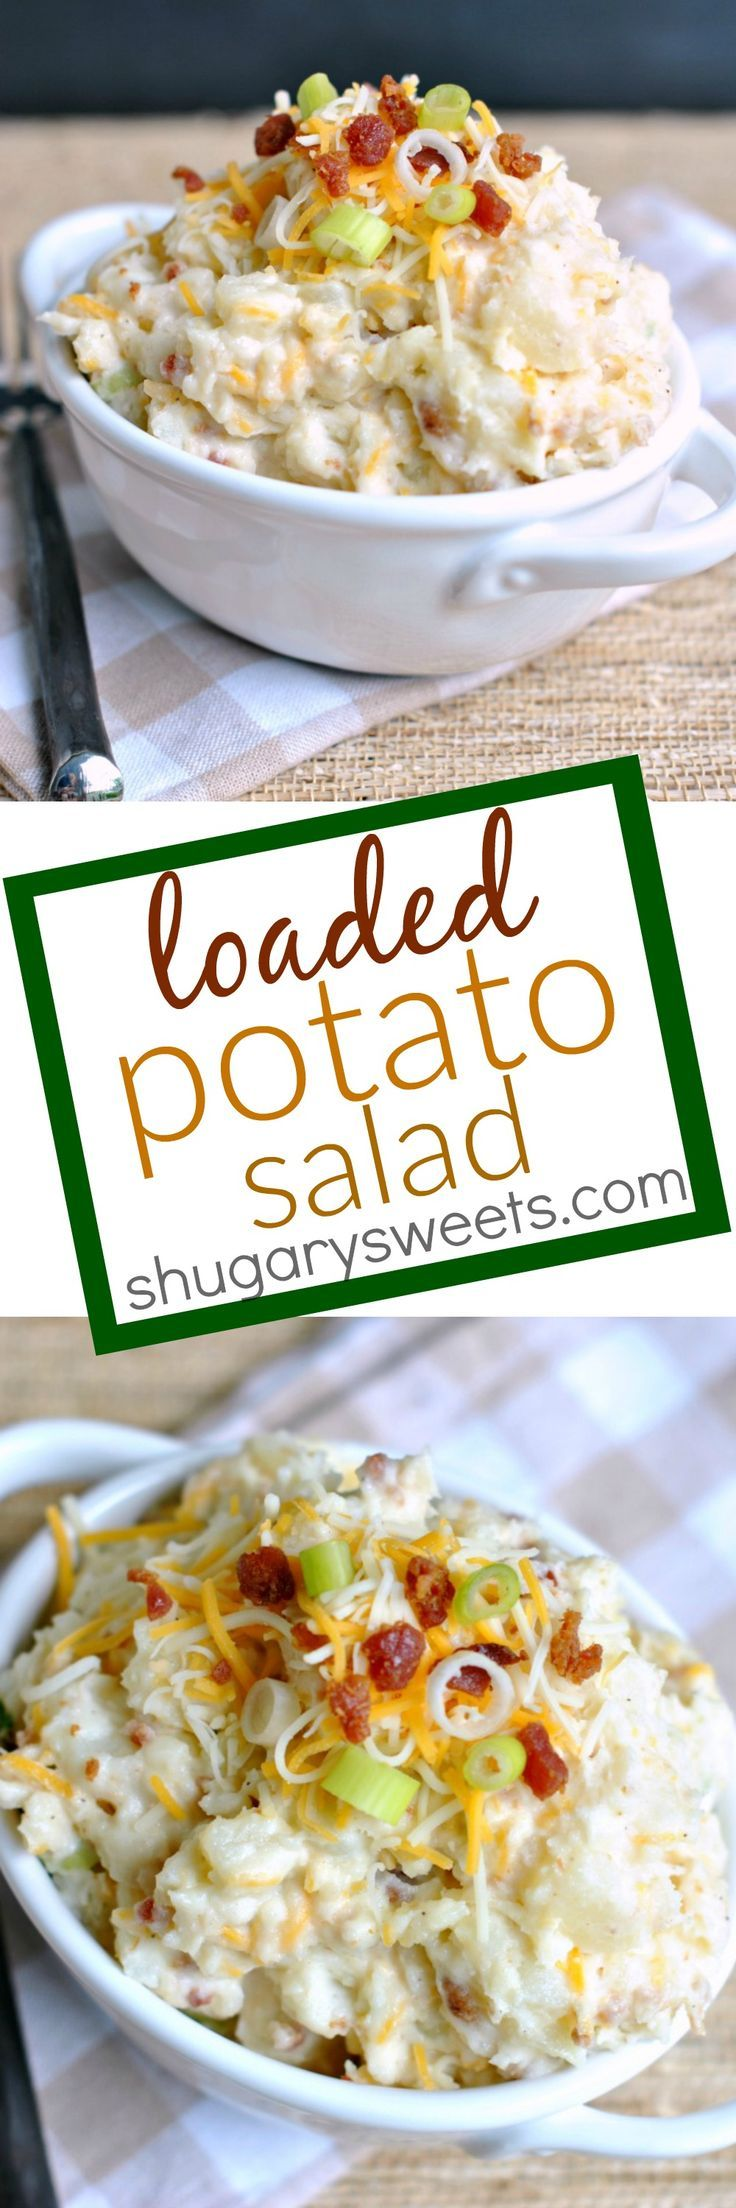 Loaded Potato Salad: easy potato salad recipe packed with your favorite toppings: cheese, bacon and onion!